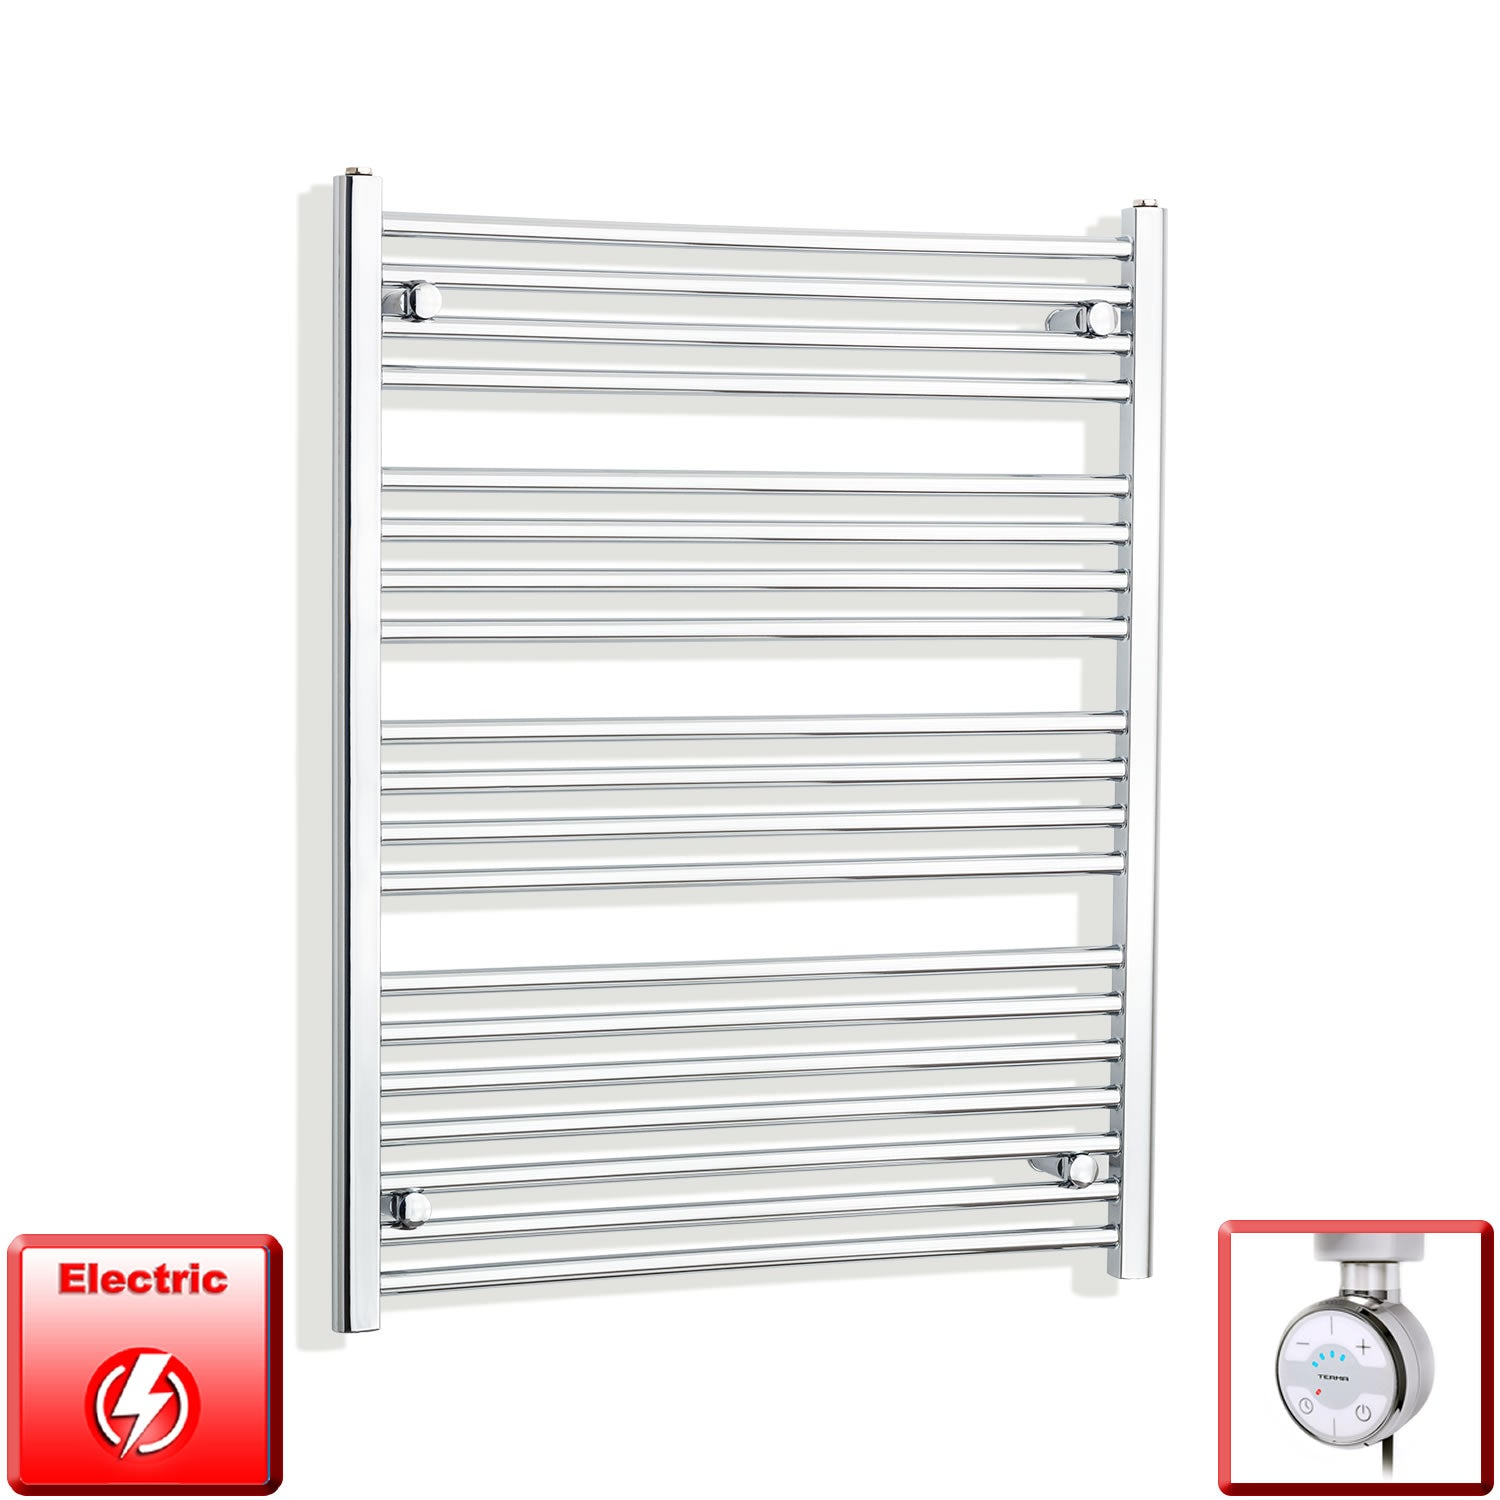 800mm Wide 1000mm High Pre-Filled Chrome Electric Towel Rail Radiator With Thermostatic MOA Element